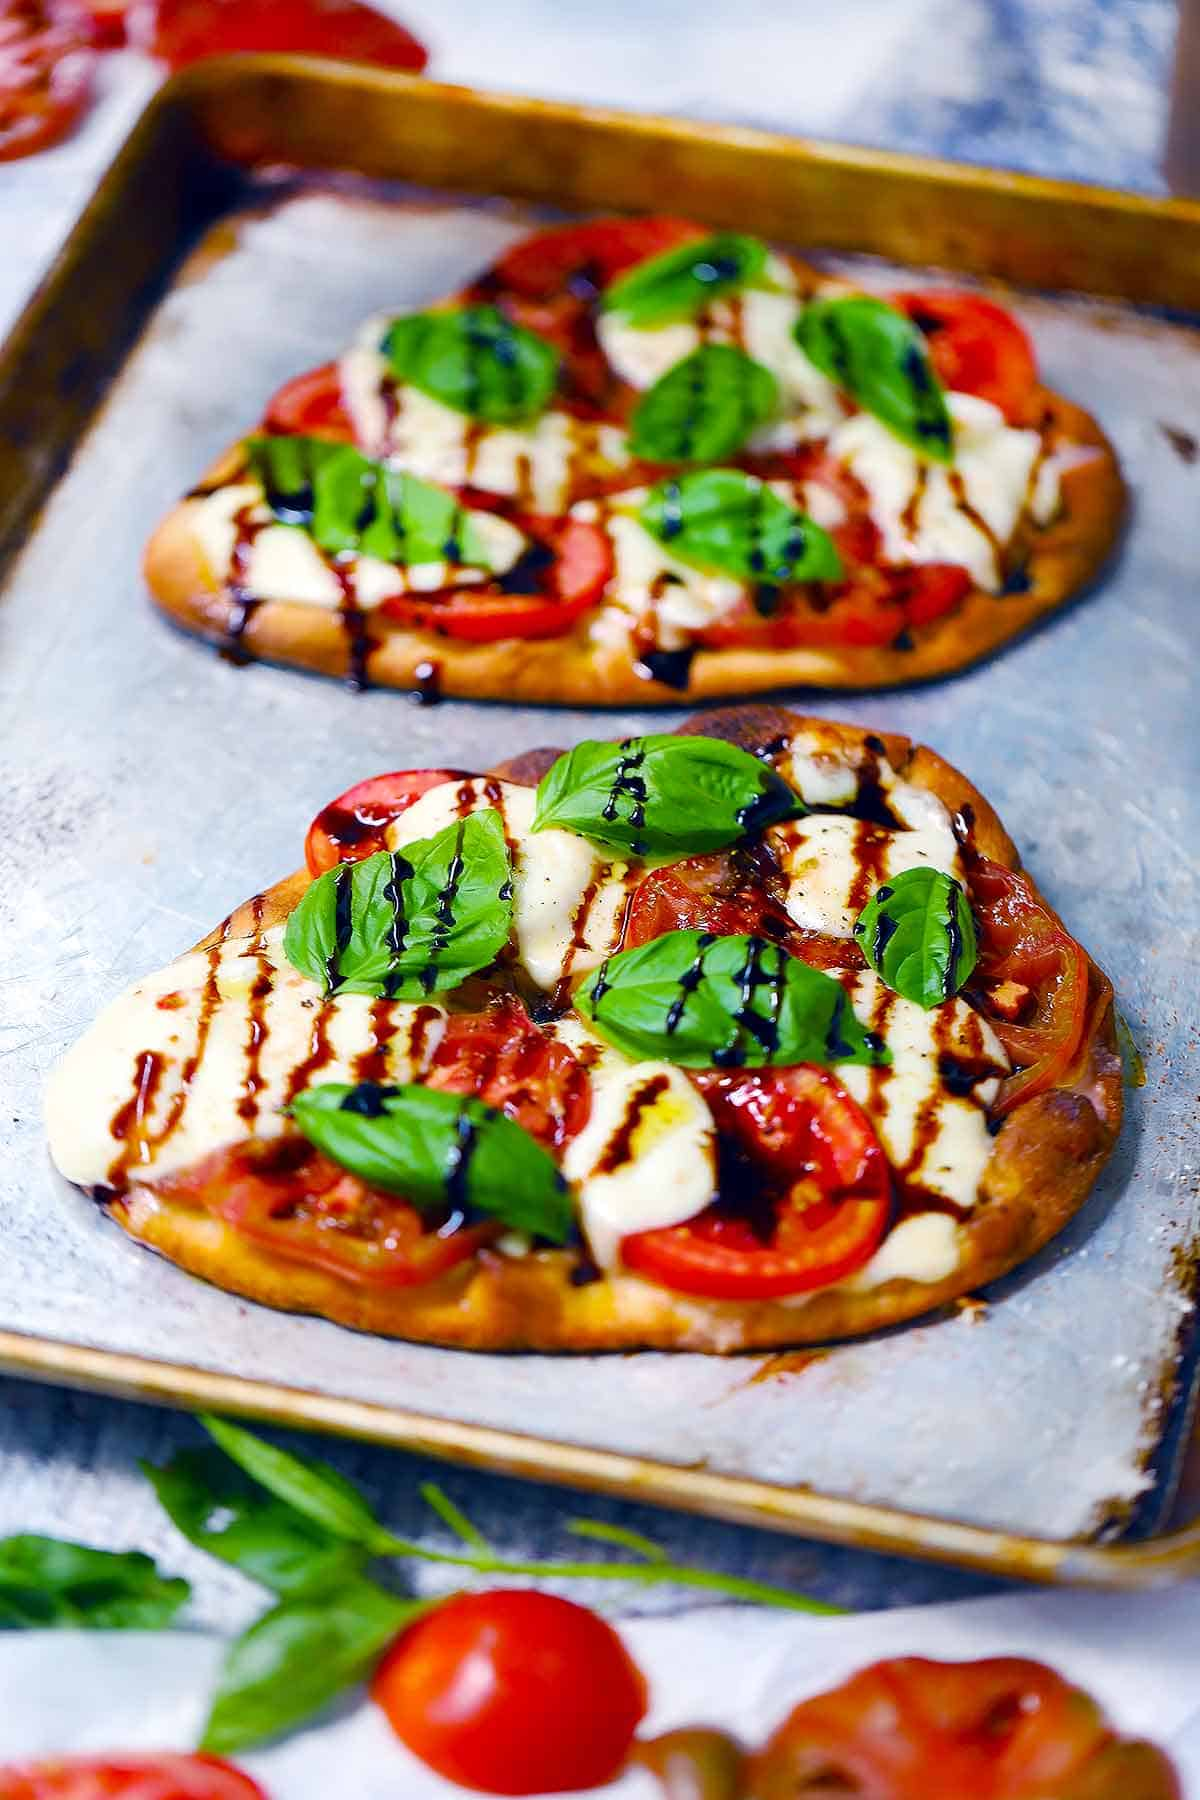 Pizza caprese includes fresh tomatoes, mozzarella, and basil on whole wheat pizza crust with an extra drizzle of olive oil and salt: delicious, fresh, and light.